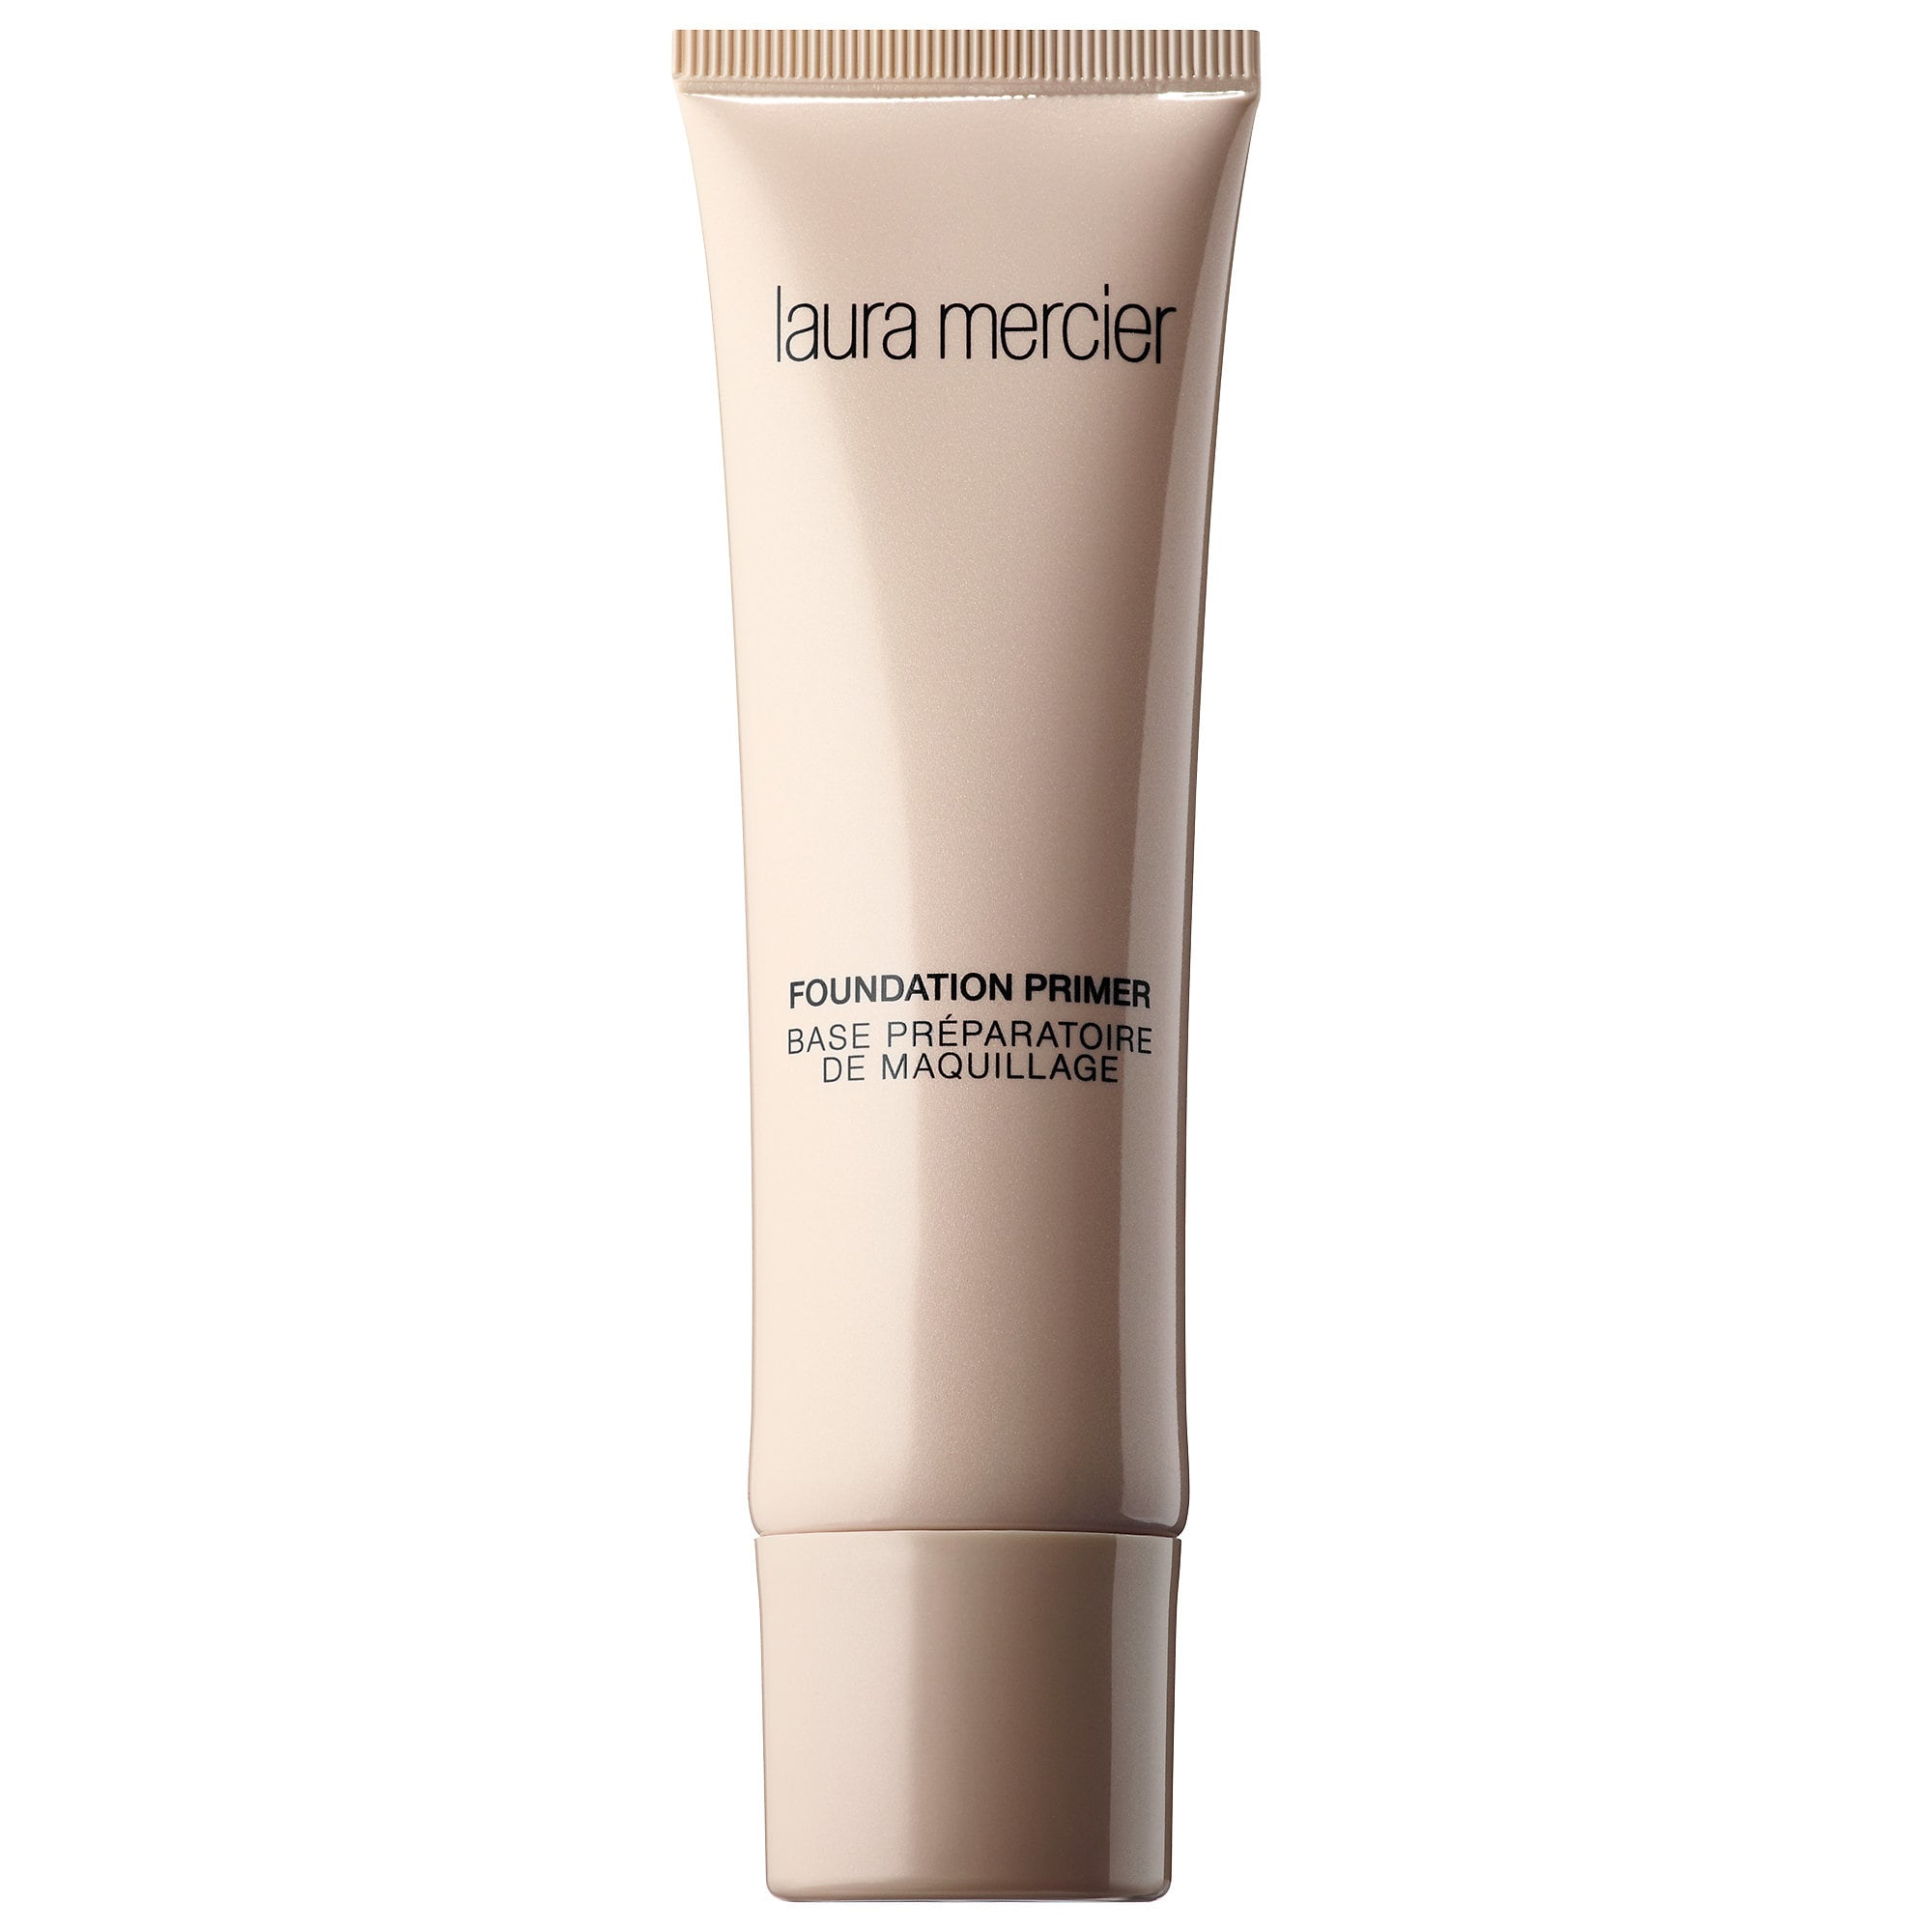 """LAURA MERCIER FOUNDATOIN PRIMER - What it is:A lightweight, creamy gel that creates an invisible barrier between skin and makeup to prime your face for color. What it does:Worn under foundation, this hydrating primer creates a smooth, flawless canvas for application, allowing foundation to glide on easily and stay fresh, keeping color true for hours. Ideal for drier skins, this hydrating formula nourishes with moisture-rich vitamins to soothe and condition. It's the first step to Laura's """"Flawless Face."""" Dermatologist-tested and non-comedogenic, it contains antioxidants vitamins A, C, and E and hydrating properties thanks to glycerin and hyaluronic acid."""